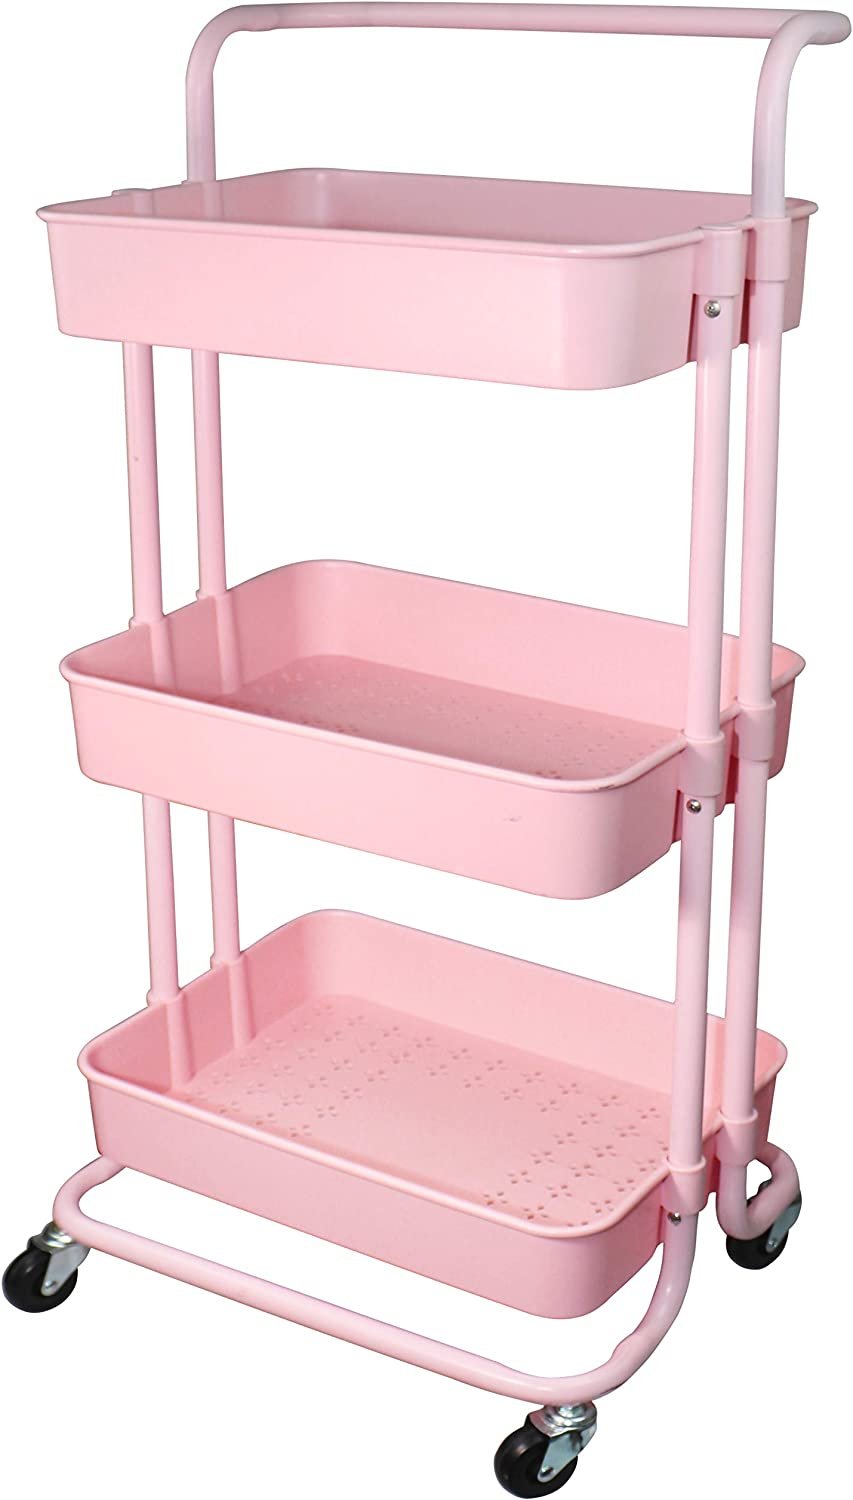 Piowio 3 Tier Utility Rolling Cart Multifunction Organizer Shelf Storage Cart with Handle and Lockable Wheels for Home Kitchen Bathroom Laundry Room Office Store etc. (Pink)